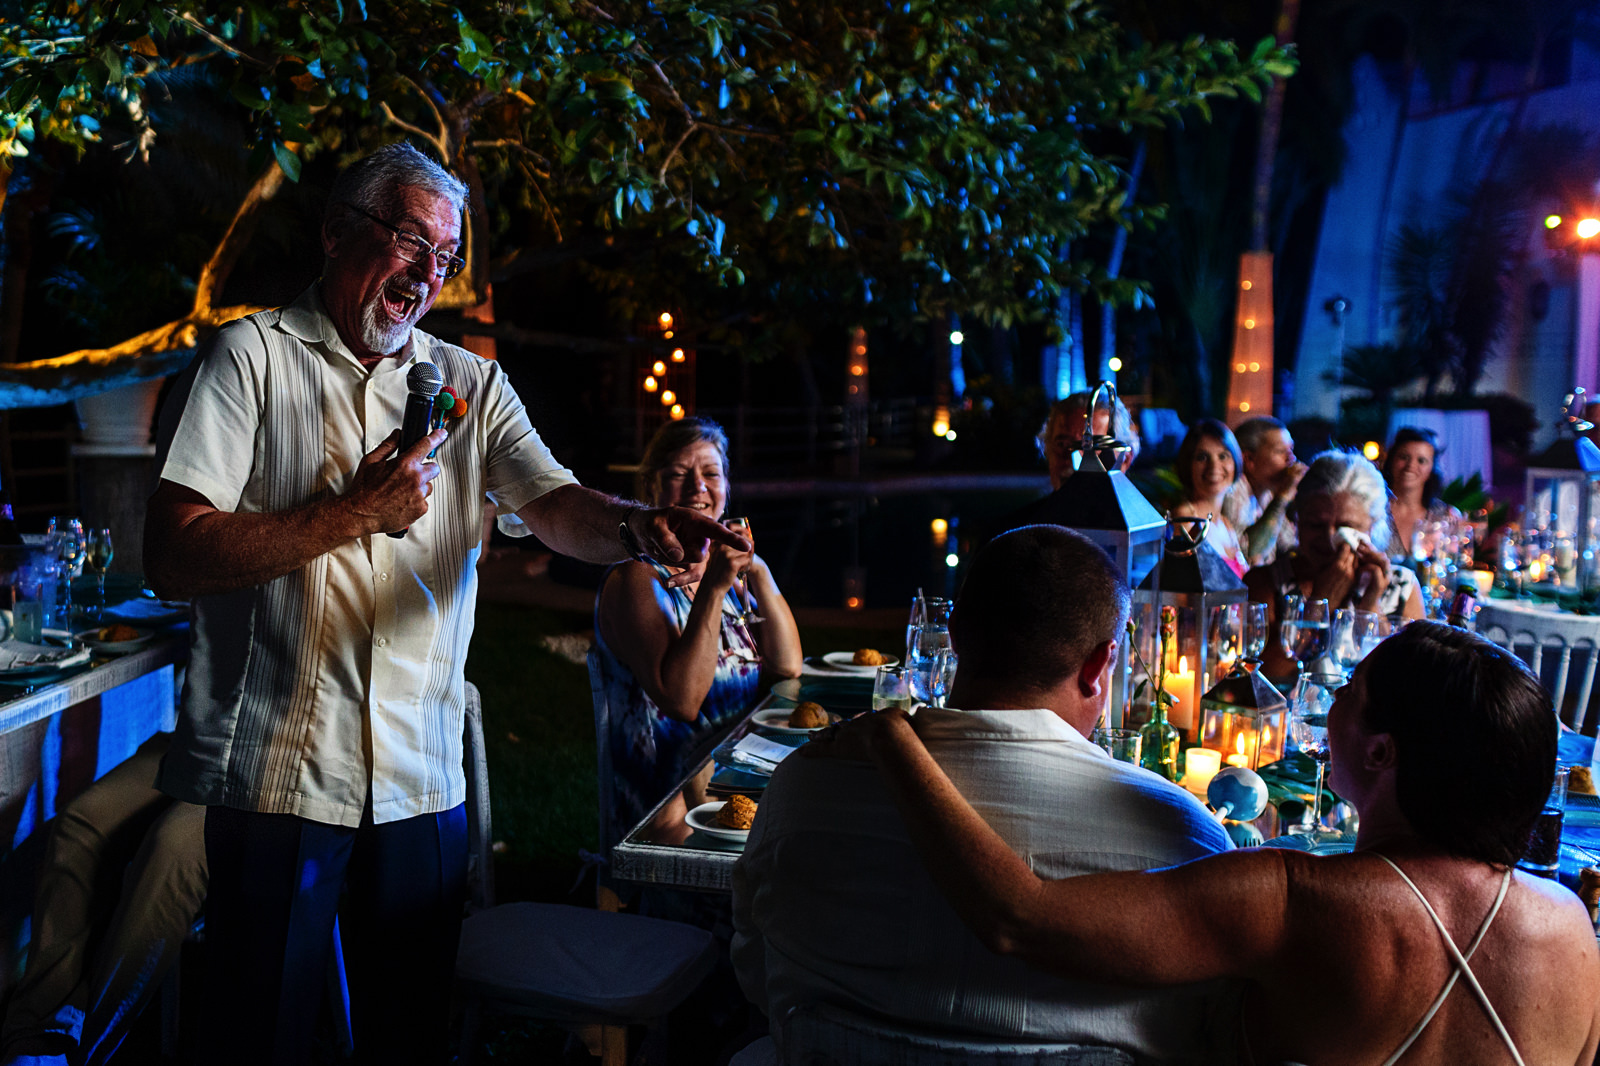 Father of the groom gives a speech during dinner